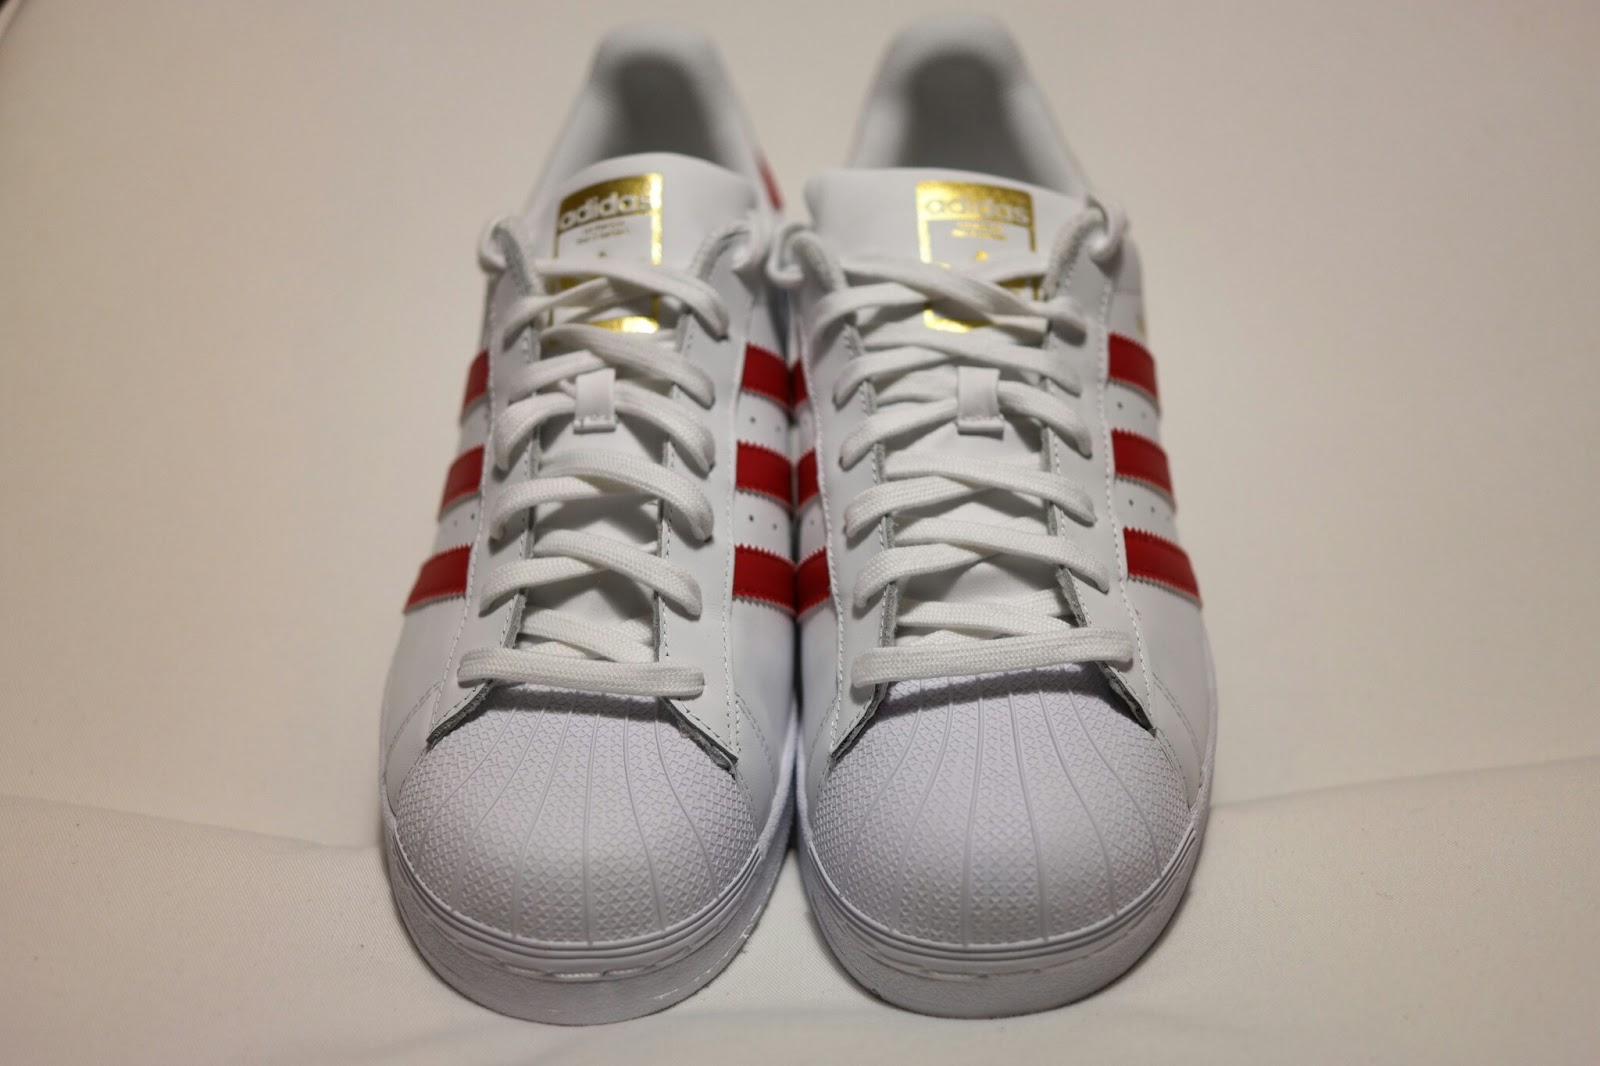 ADIDAS SUPERSTAR BEI FOOT LOCKER - IT MUST BE FEBRUARY